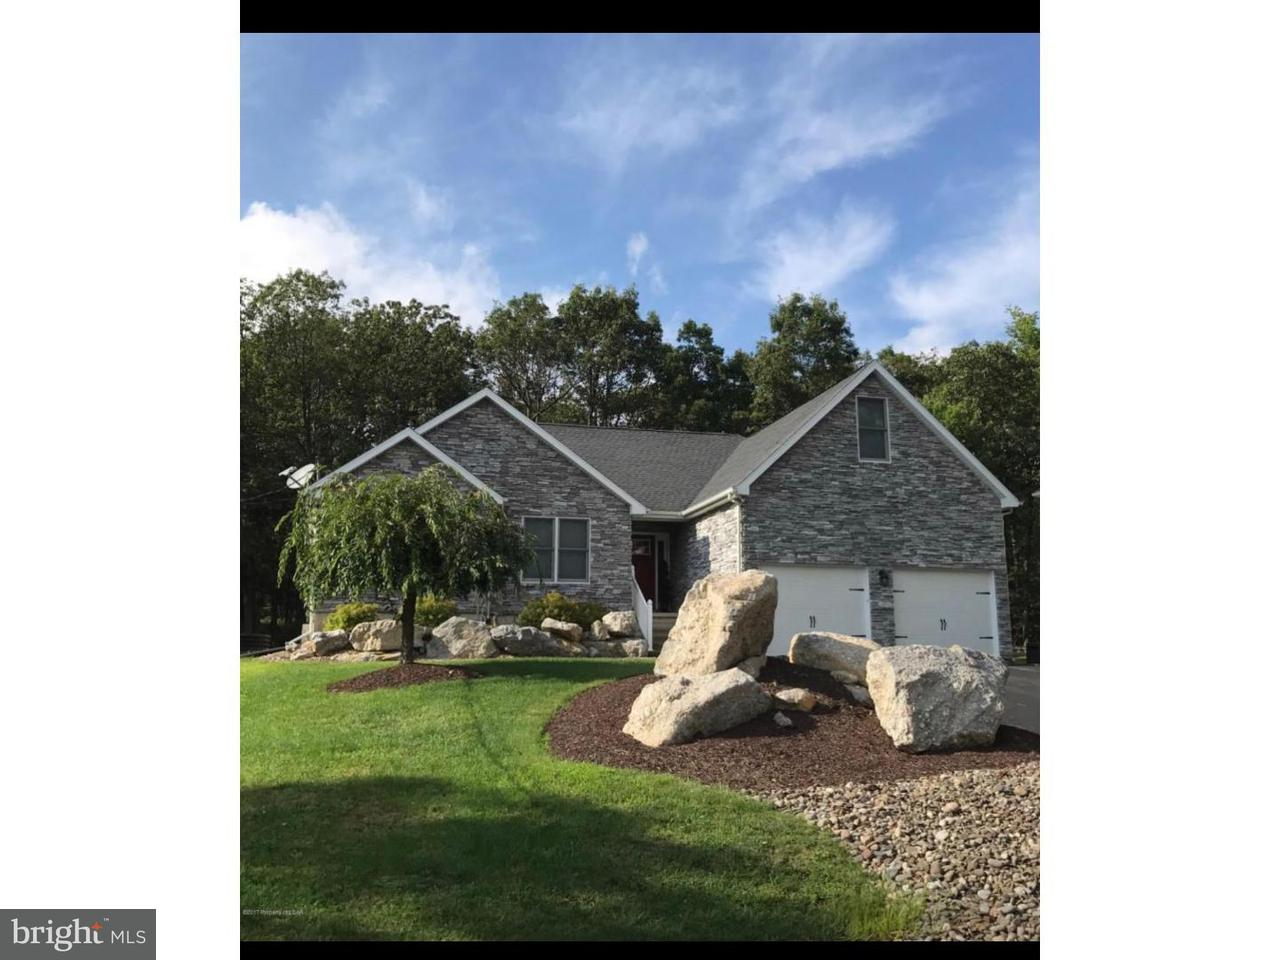 Single Family Home for Sale at 48 TURNBERRY Lane Hazle Township, Pennsylvania 18202 United States